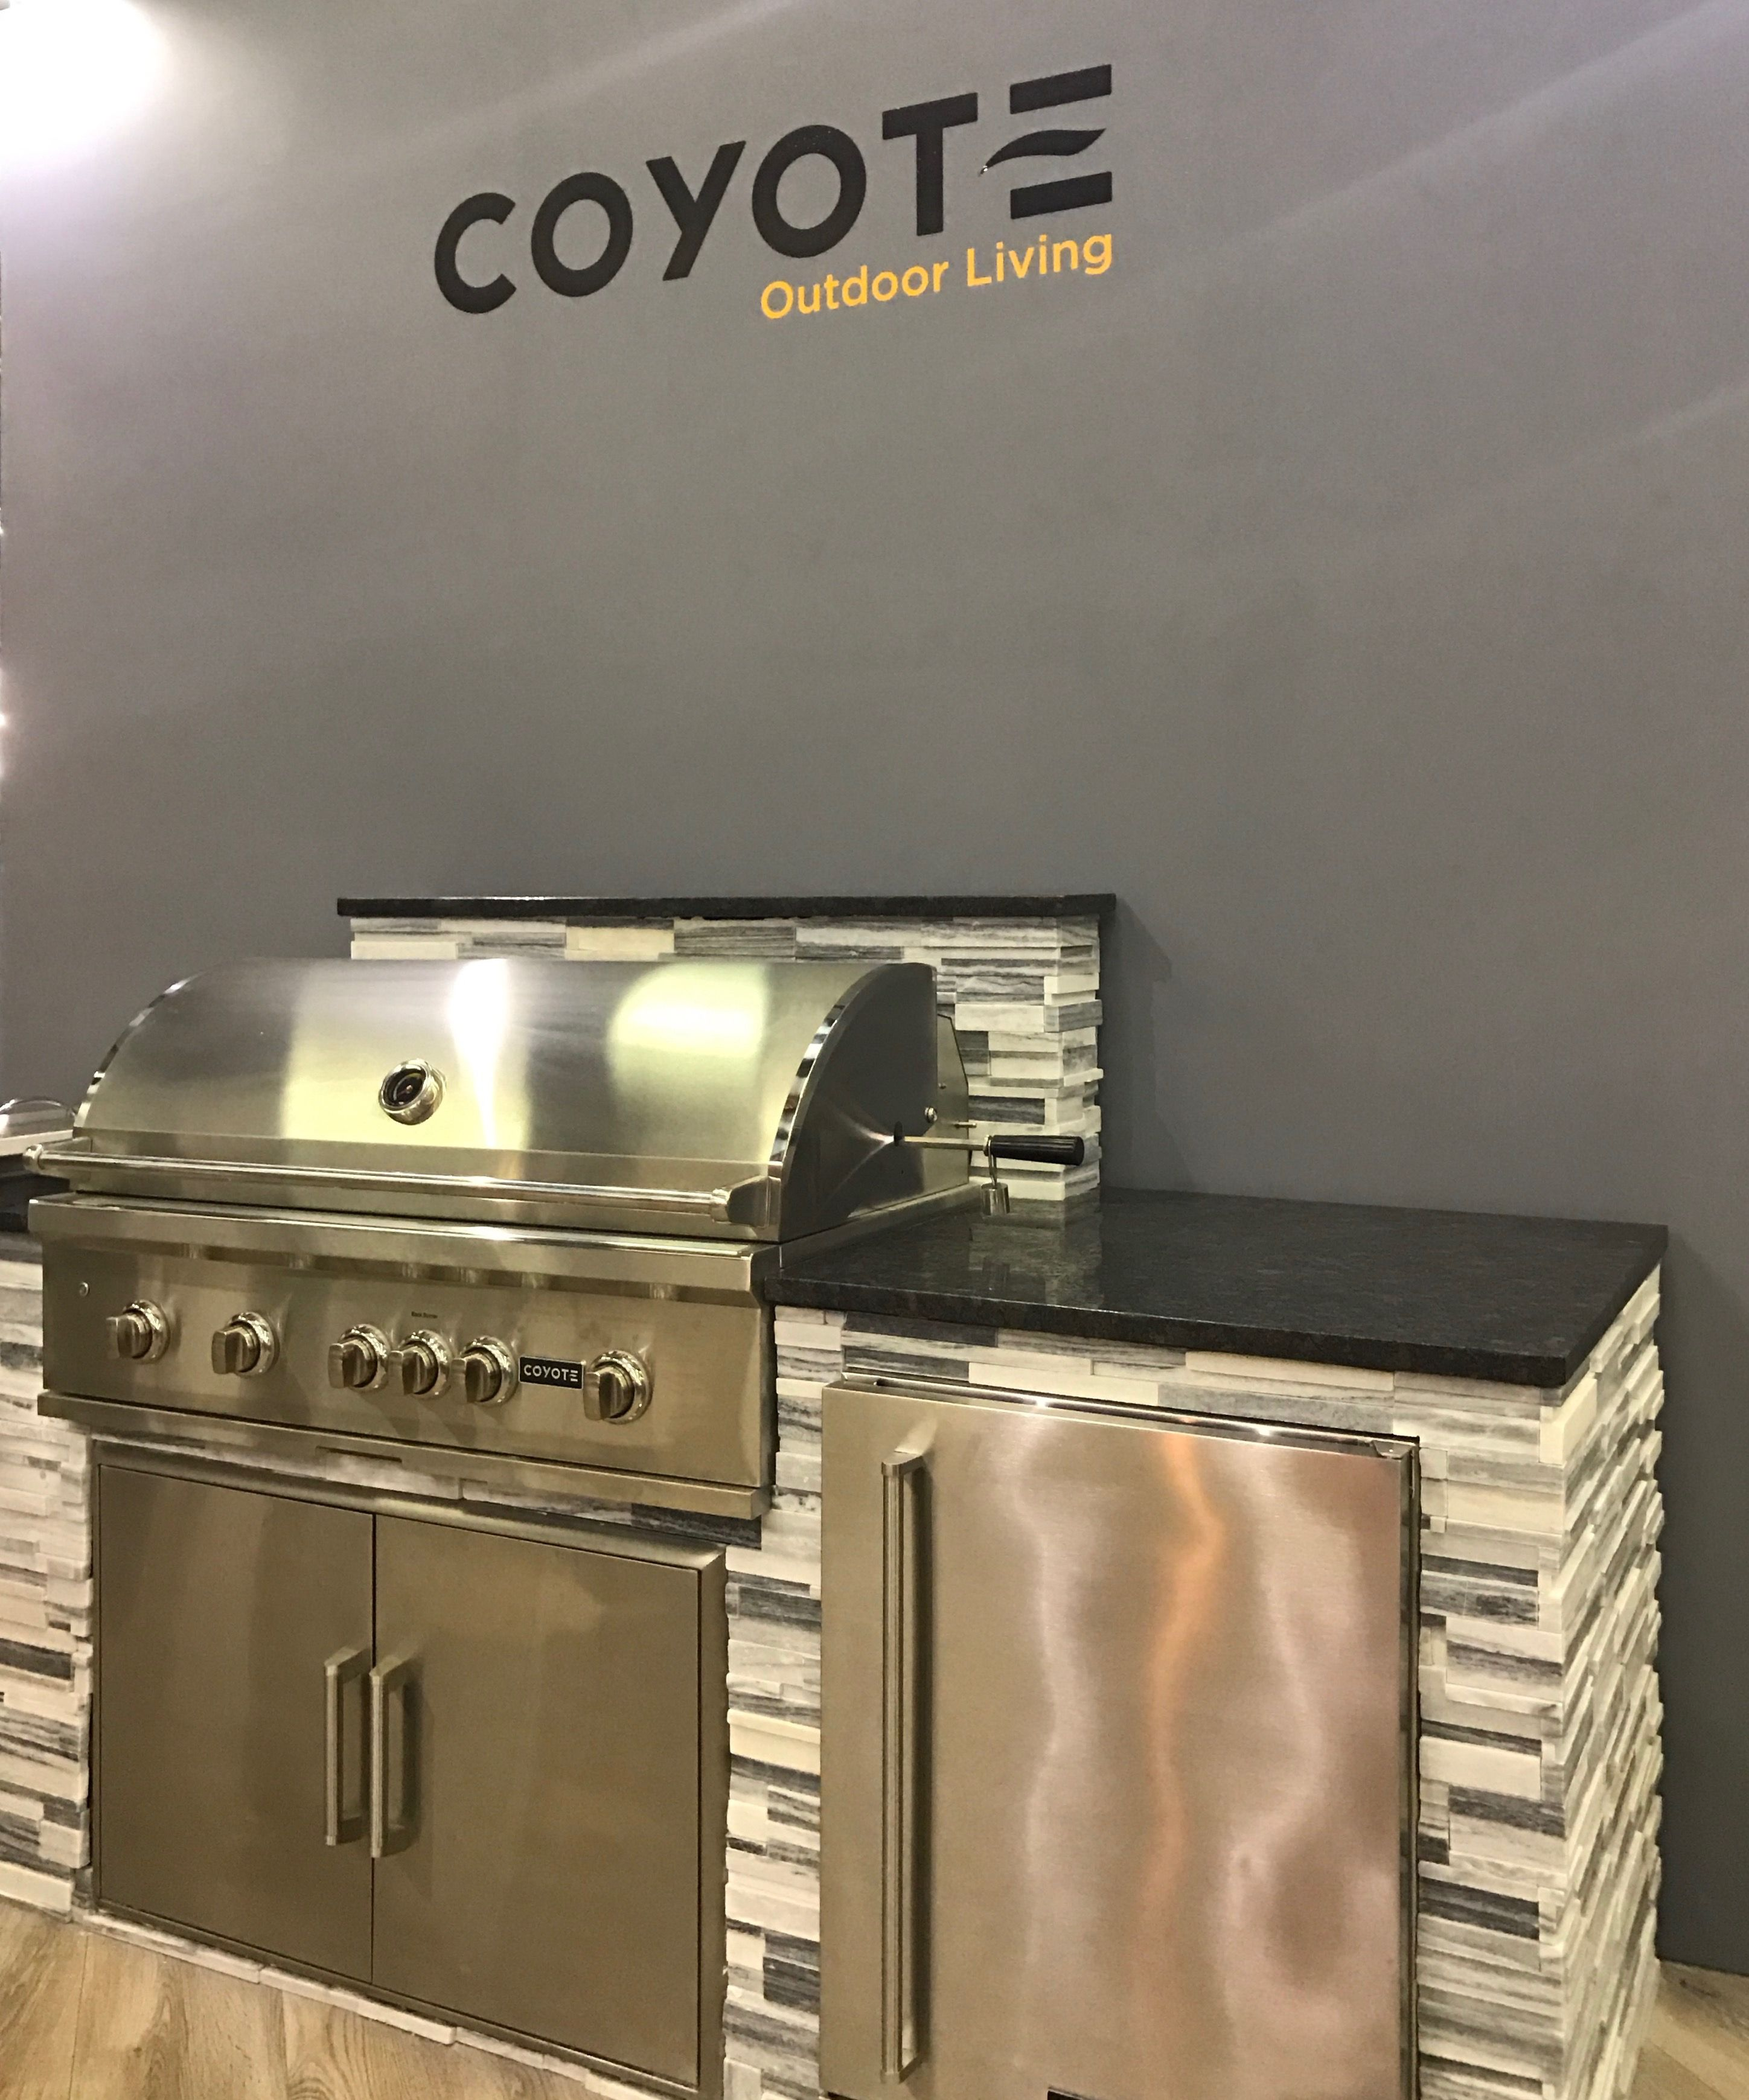 Pin By Distinctive Appliances Distrib On Coyote Outdoor Living With Images Outdoor Space Design Outdoor Kitchen Beautiful Outdoor Spaces